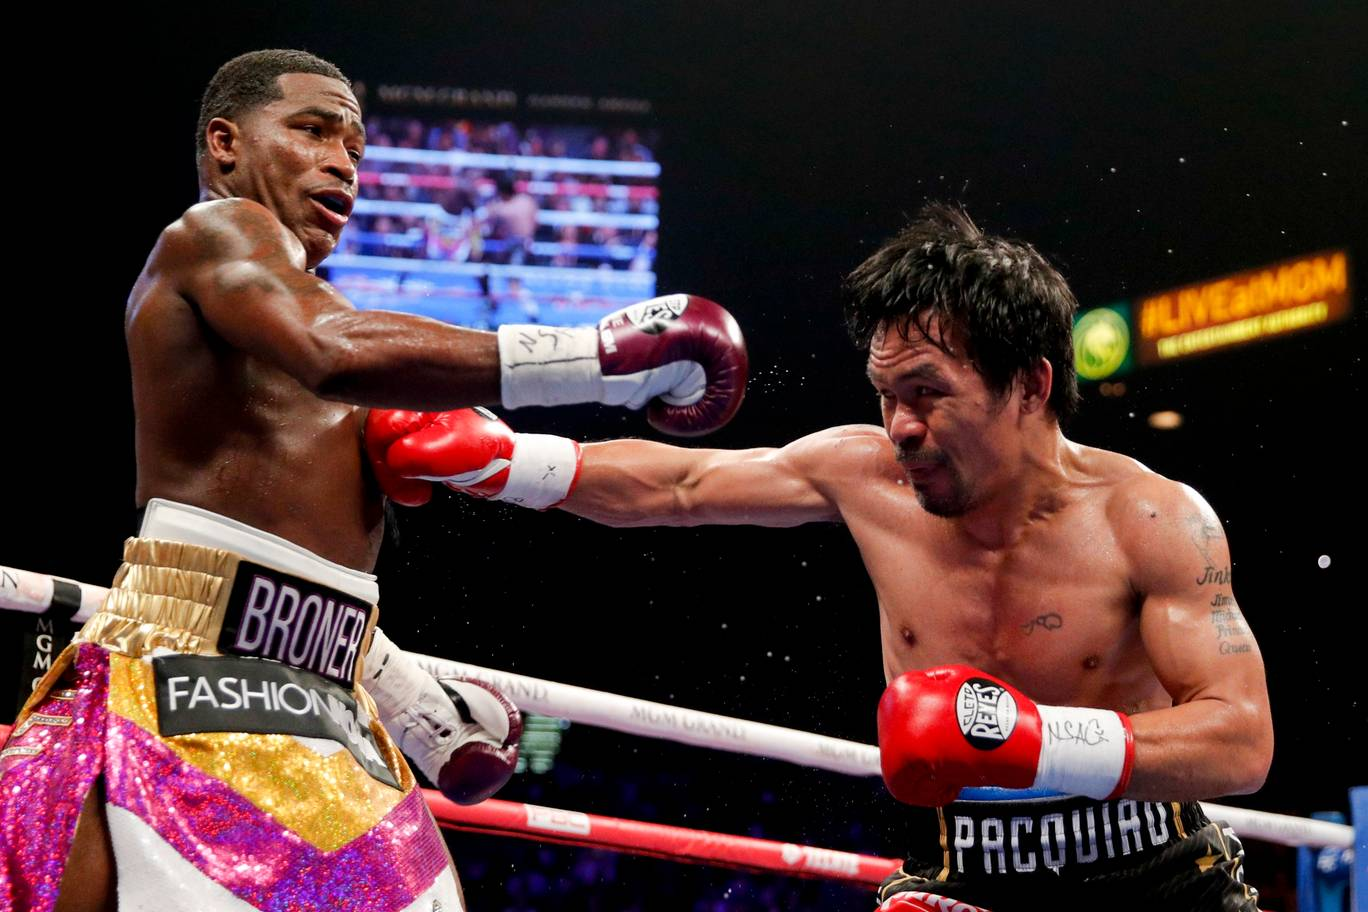 Manny Pacquiao wins against Adrien Broner to retain WBA World Title